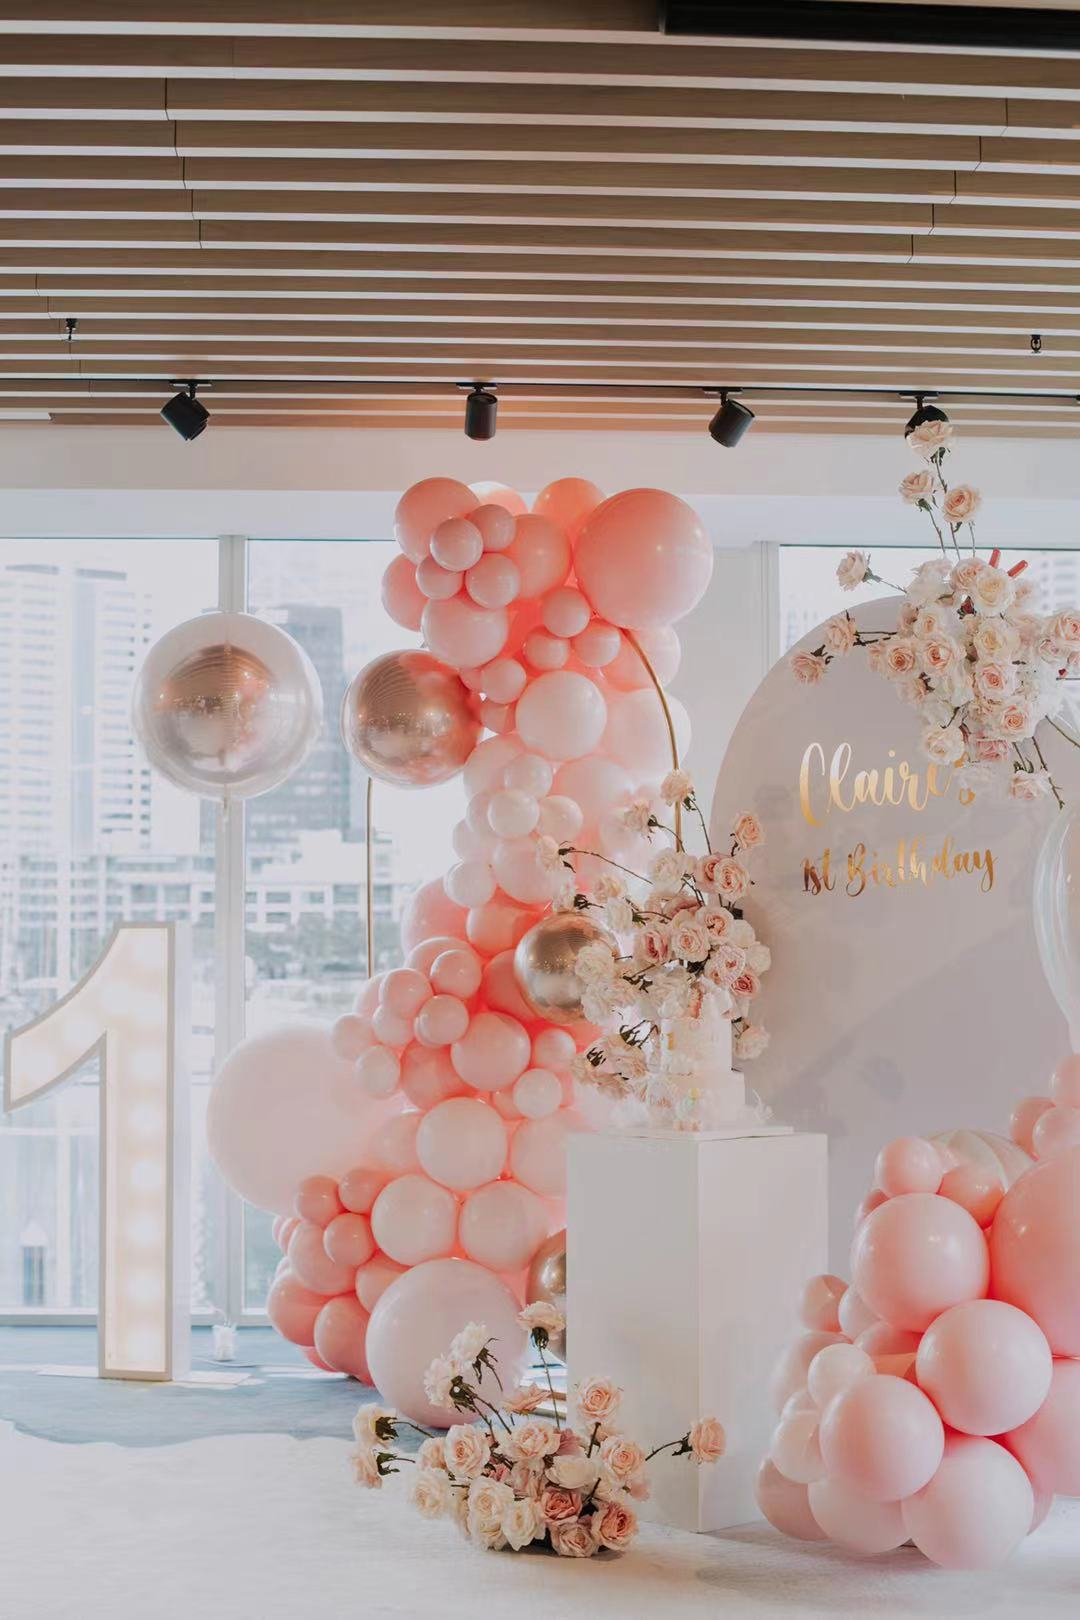 Floral Bloom // Styling and Hire by Luxe Dream, Florals by Luxe Dream Floral Studio